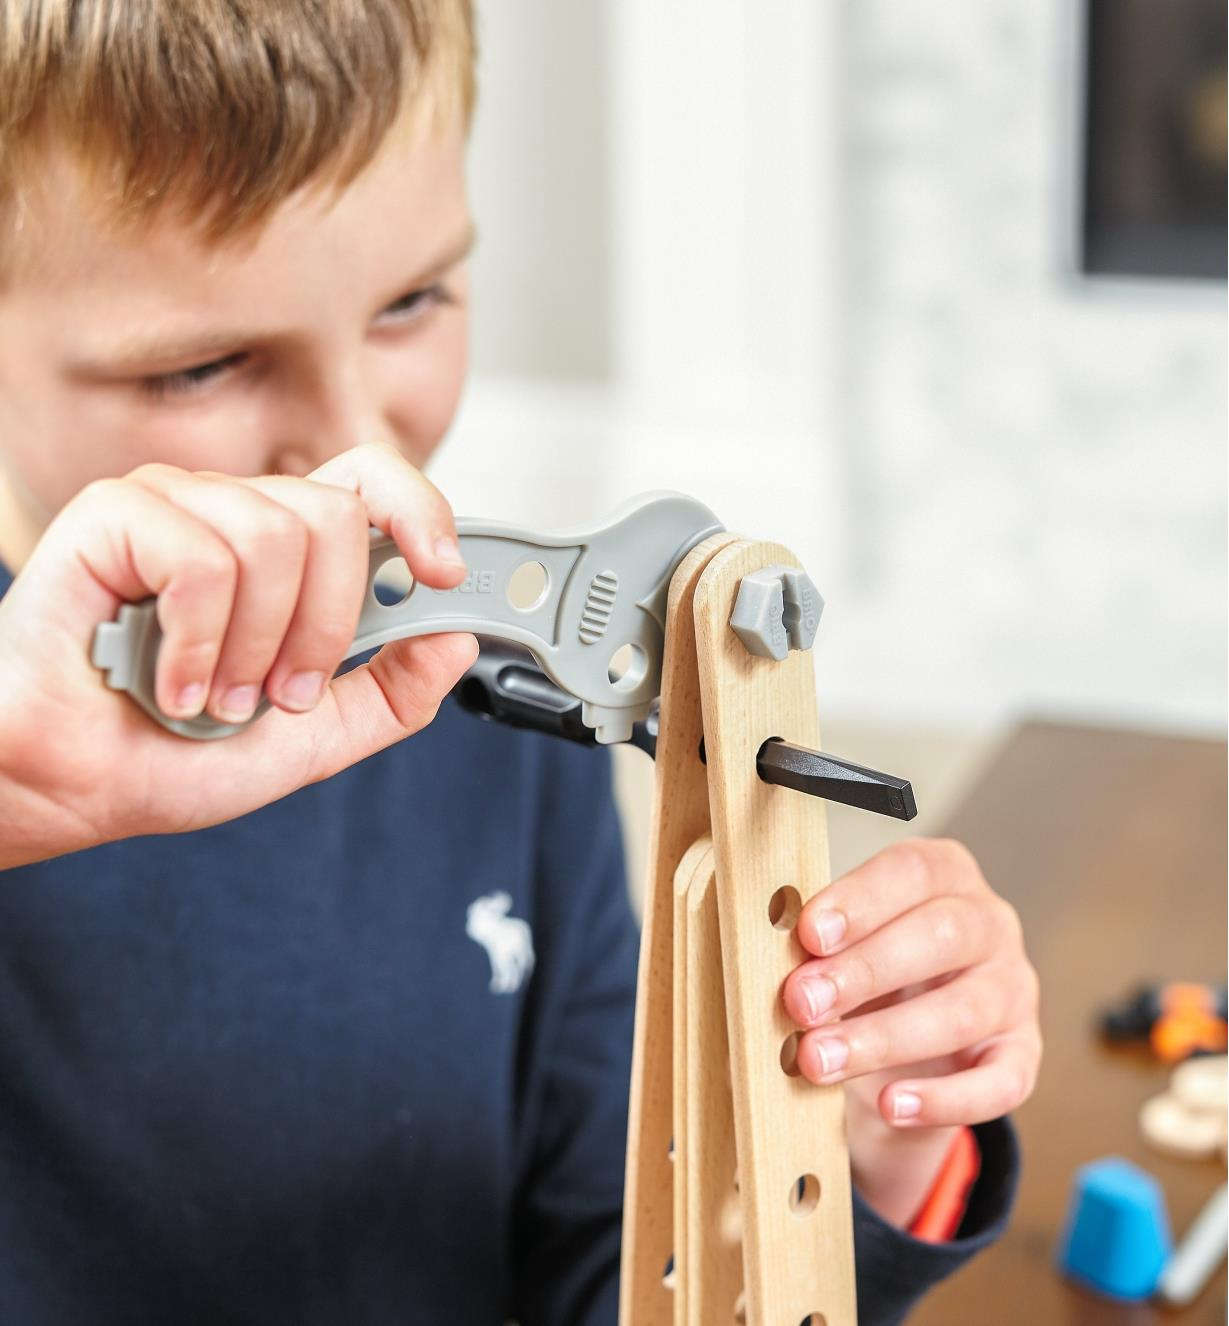 A boy uses the wrench to tighten a bolt while building a rocket